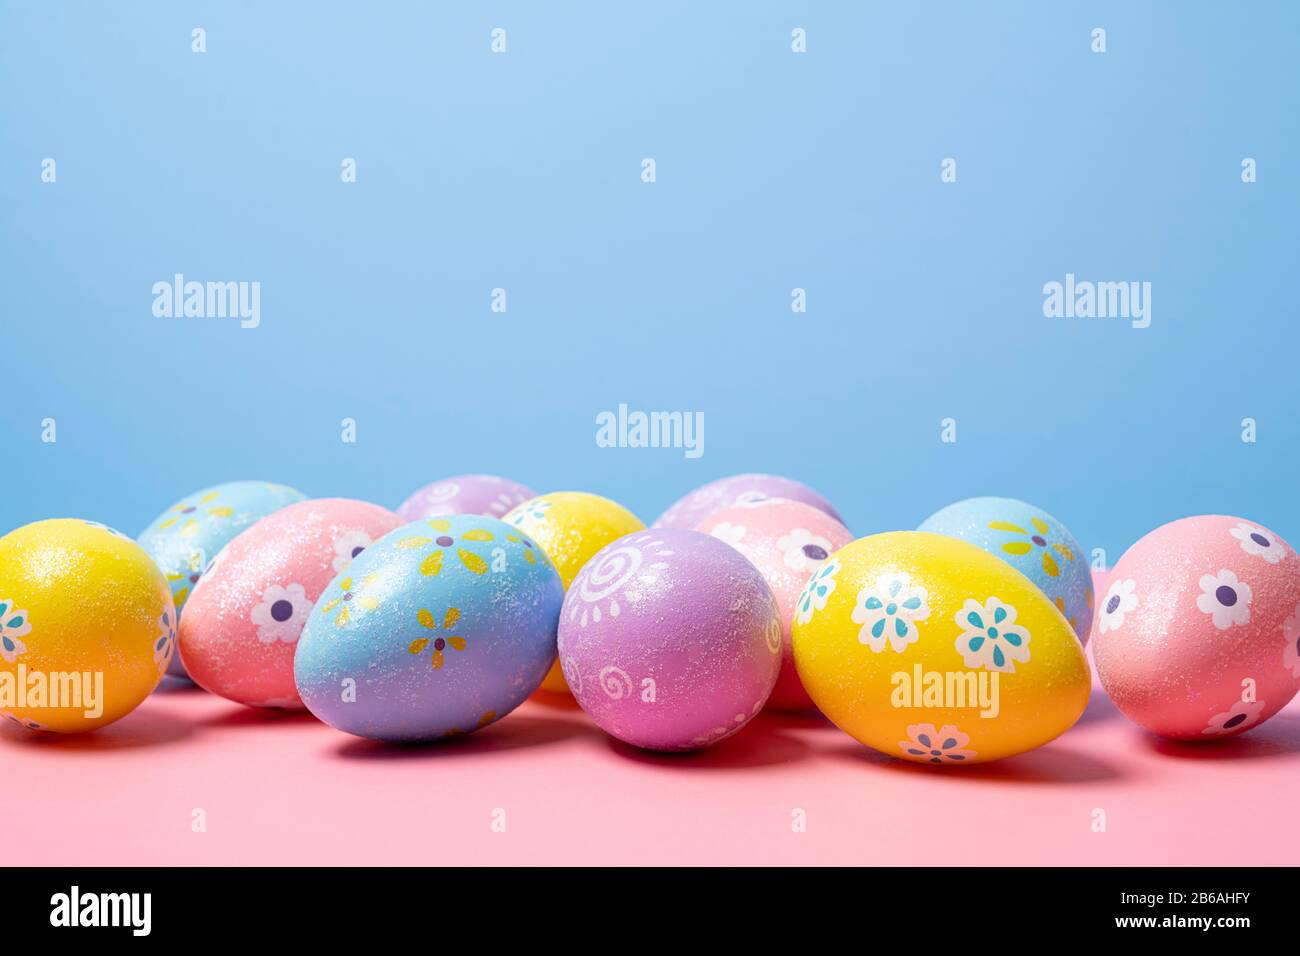 Painted Easter eggs on a colorful background Stock Photo